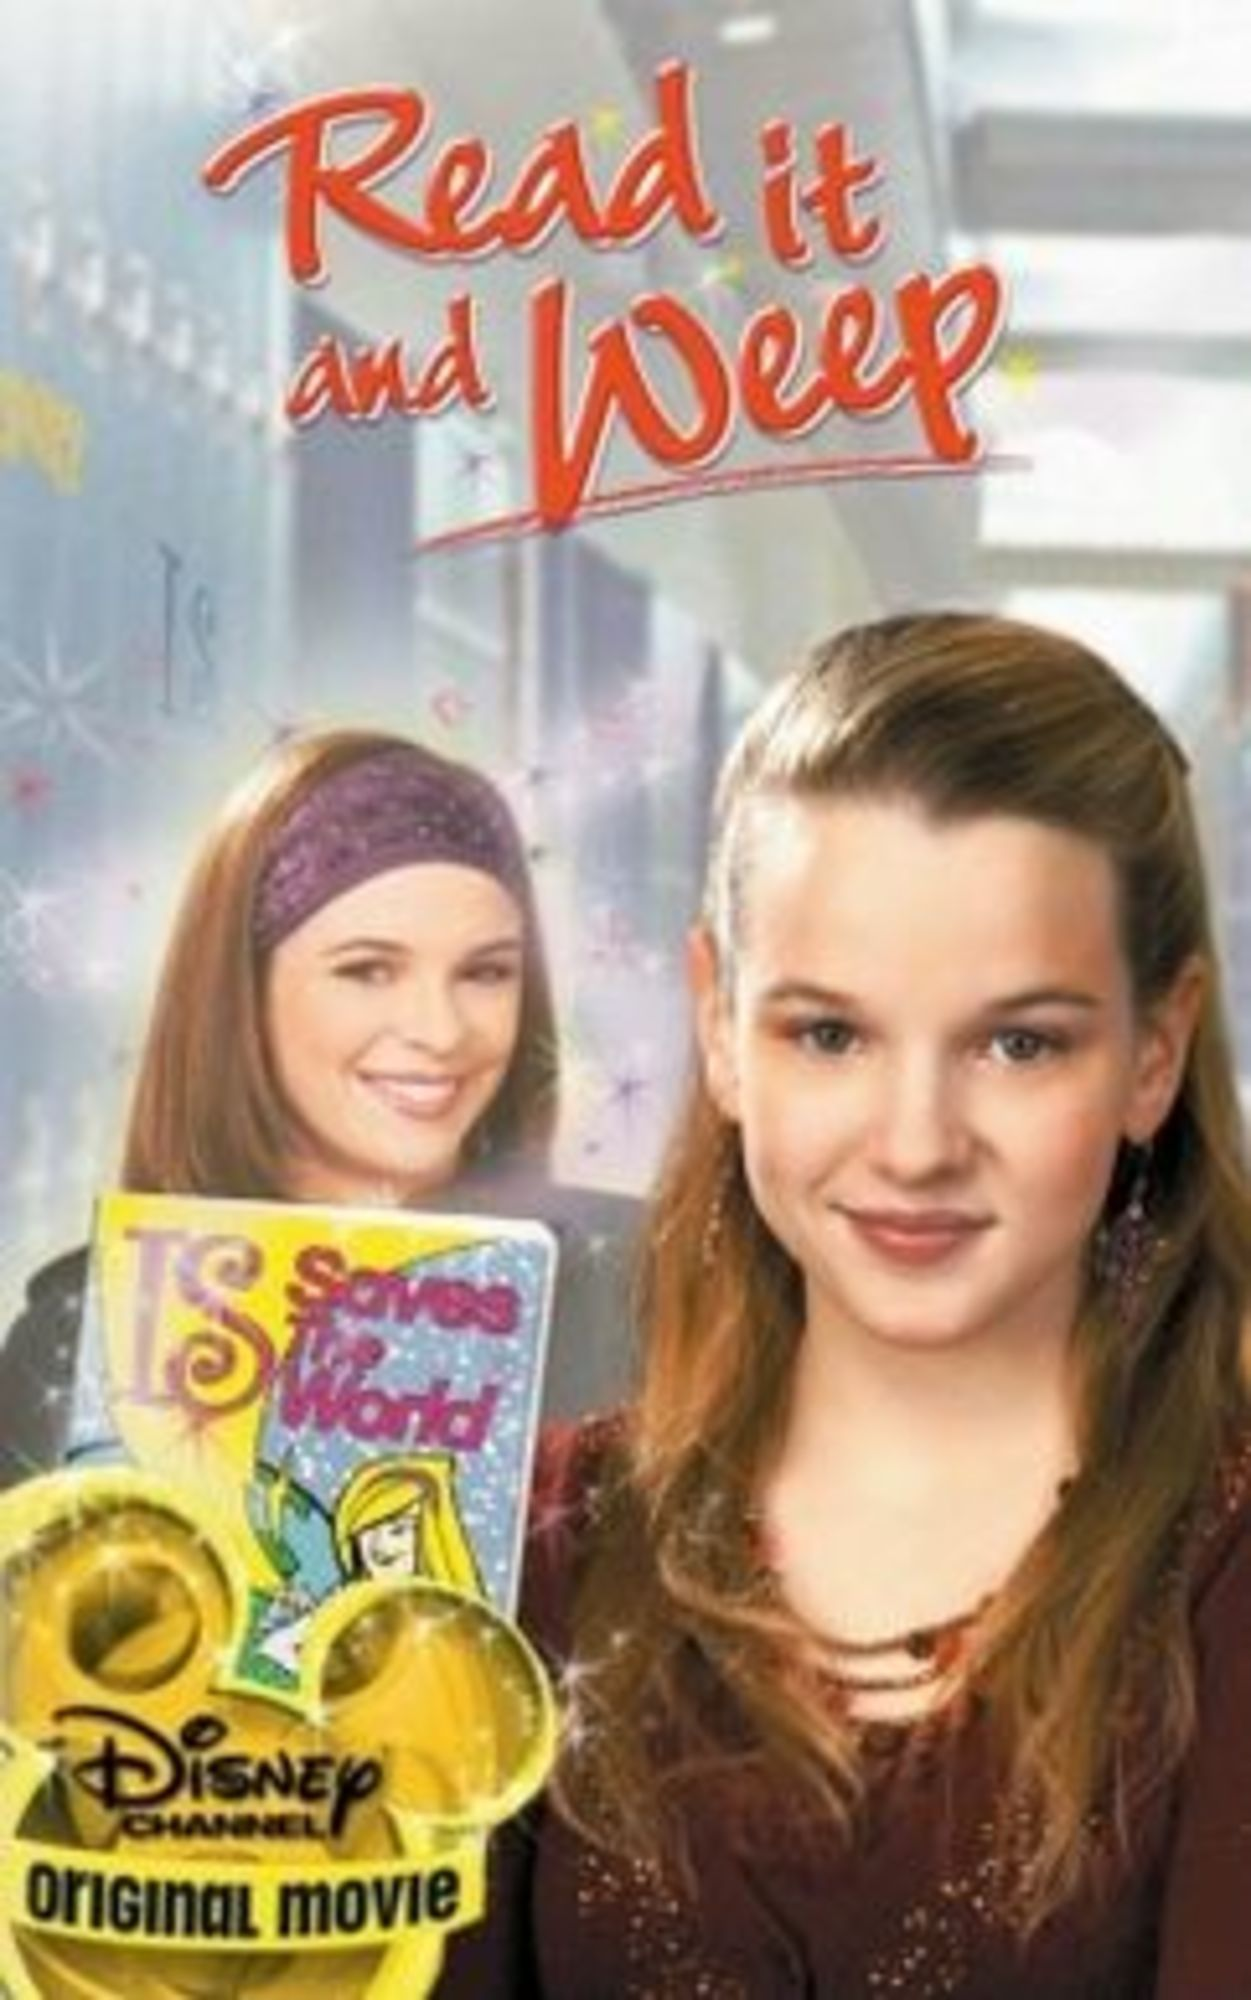 affiche poster journal jaimie read weep disney channel